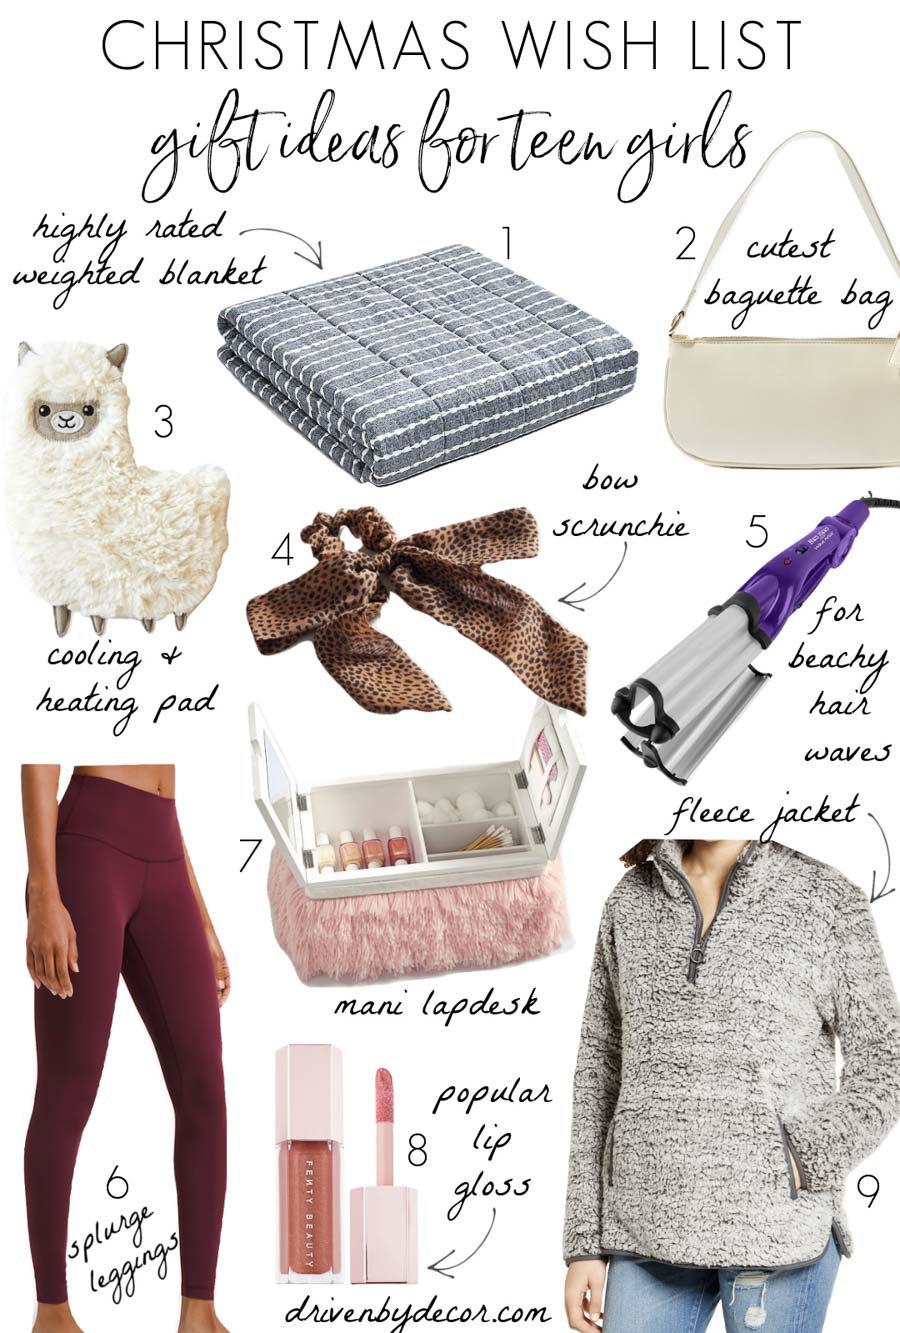 Great Christmas wish list ideas for teen girls!